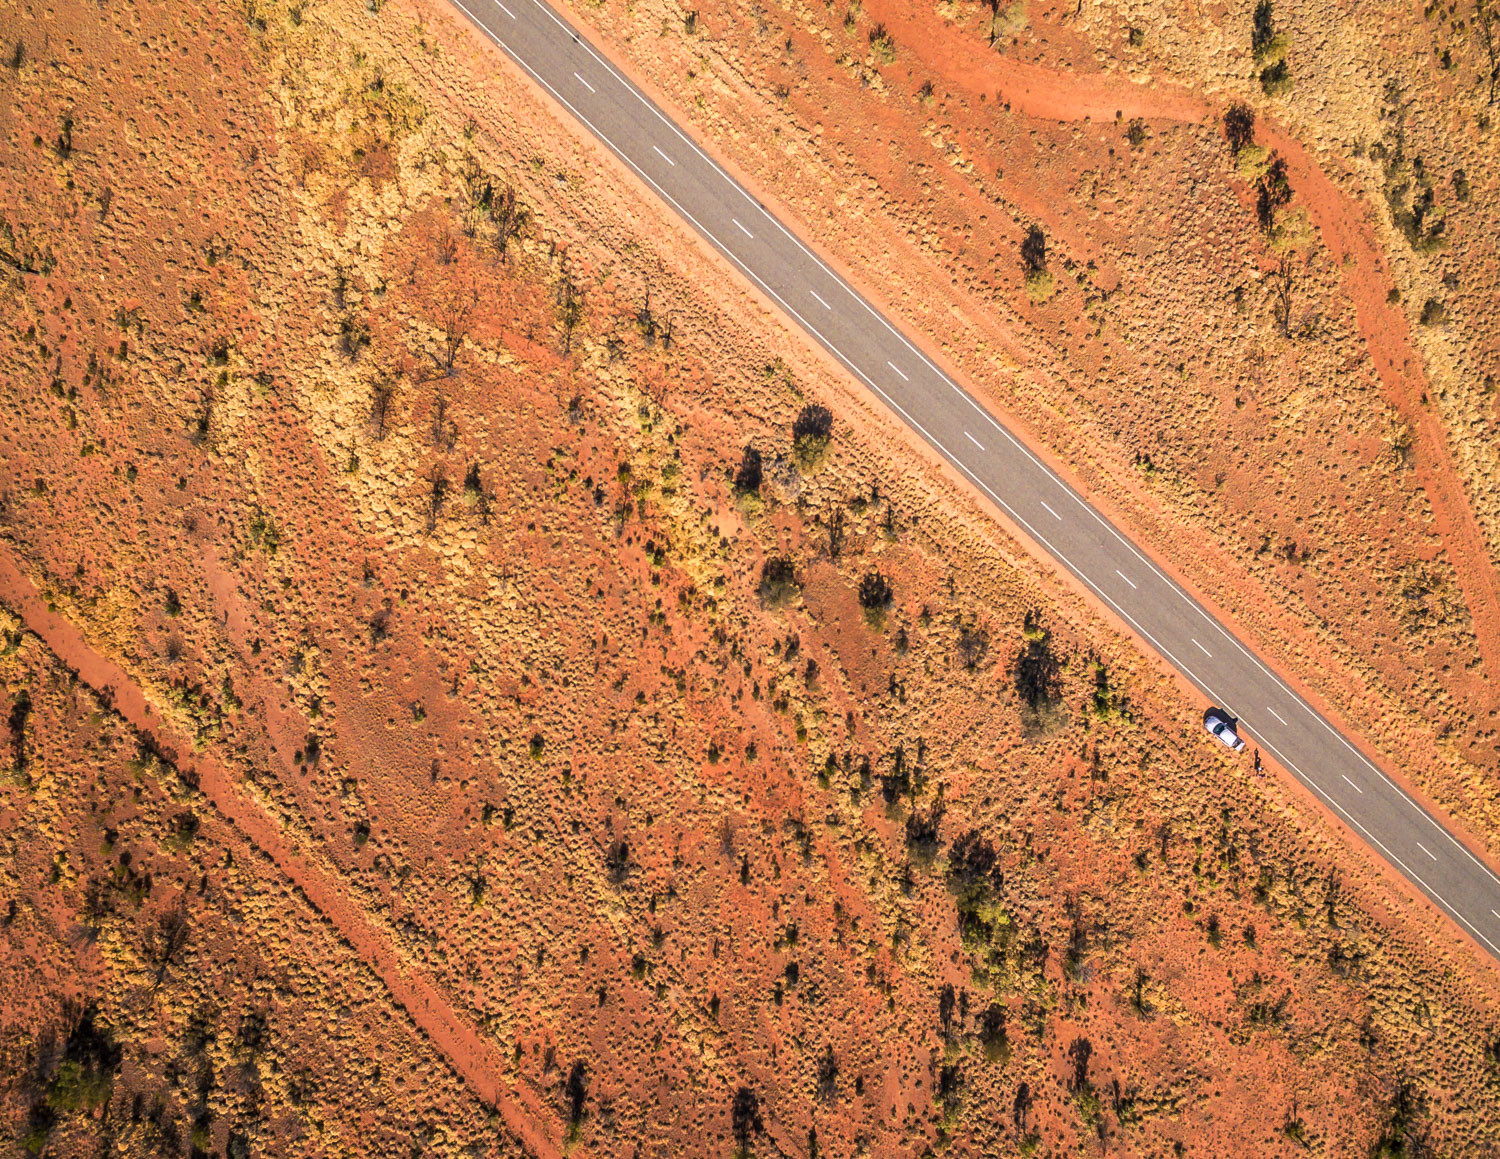 Outback road trip itinerary - Drone view of the Outback